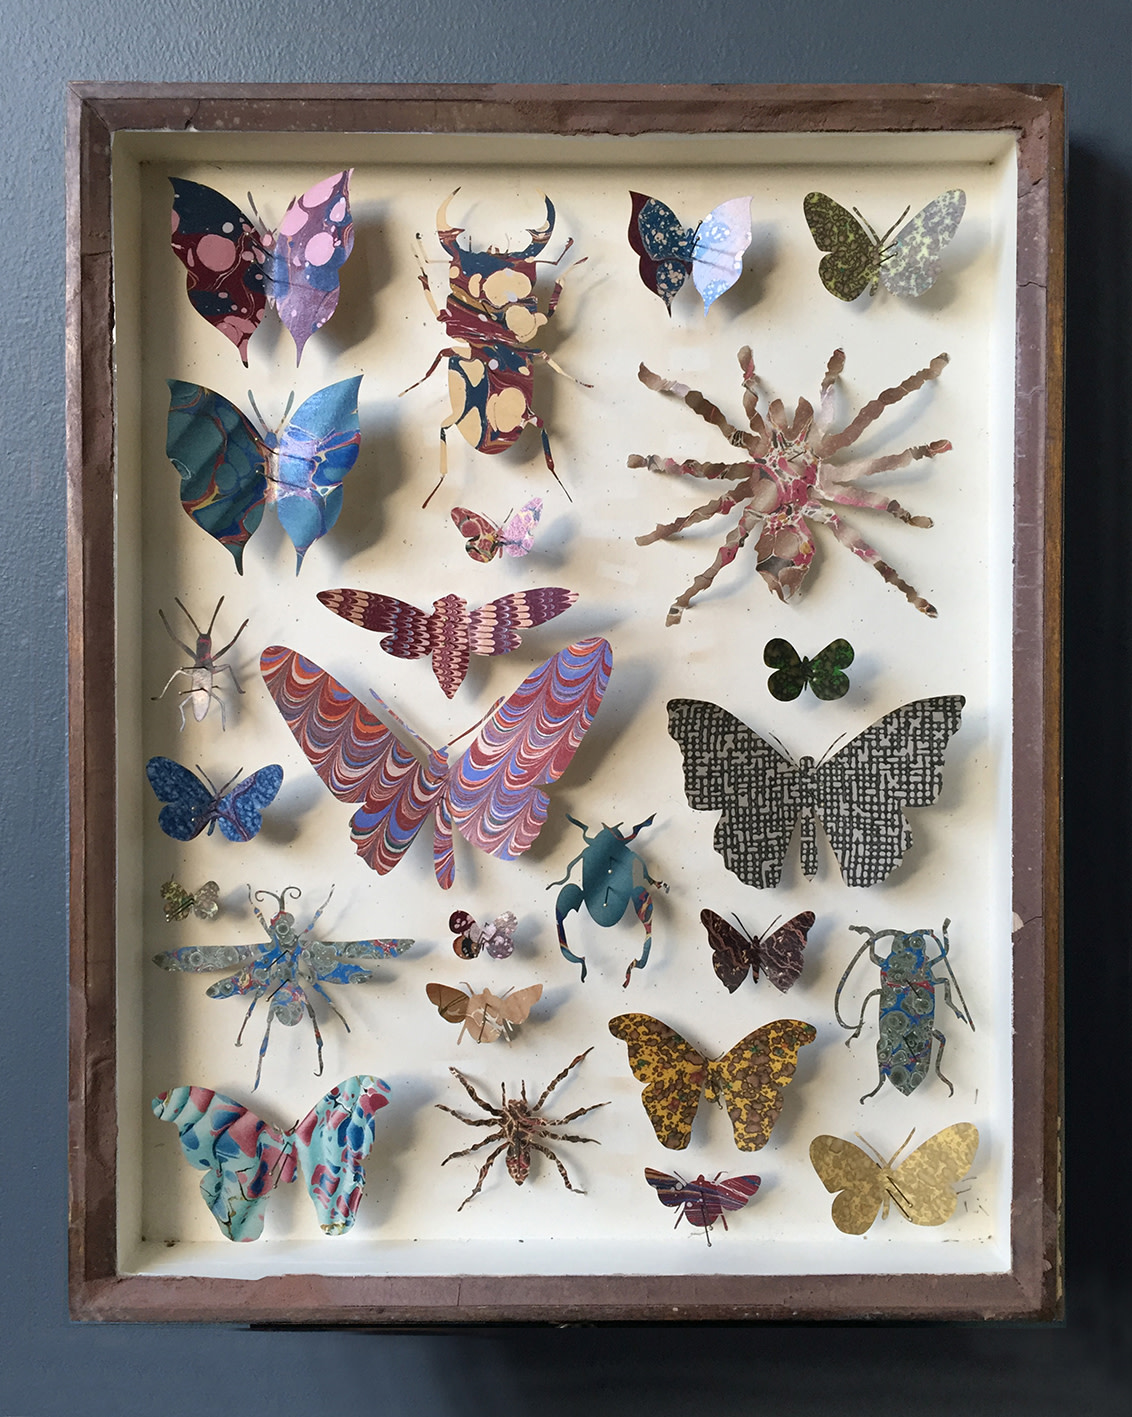 <span class=&#34;link fancybox-details-link&#34;><a href=&#34;/artists/142-helen-ward/works/6232-helen-ward-entomology-case-6-2019/&#34;>View Detail Page</a></span><div class=&#34;artist&#34;><strong>Helen Ward</strong></div> <div class=&#34;title&#34;><em>Entomology Case 6</em>, 2019</div> <div class=&#34;medium&#34;>Victorian entomology drawer, hand-marbled papers, enamel pins</div> <div class=&#34;dimensions&#34;>39 x 29 cm</div><div class=&#34;price&#34;>£595.00</div><div class=&#34;copyright_line&#34;>Own Art: £ 59.50 x 10 Monthly 0% APR Representative Payments</div>